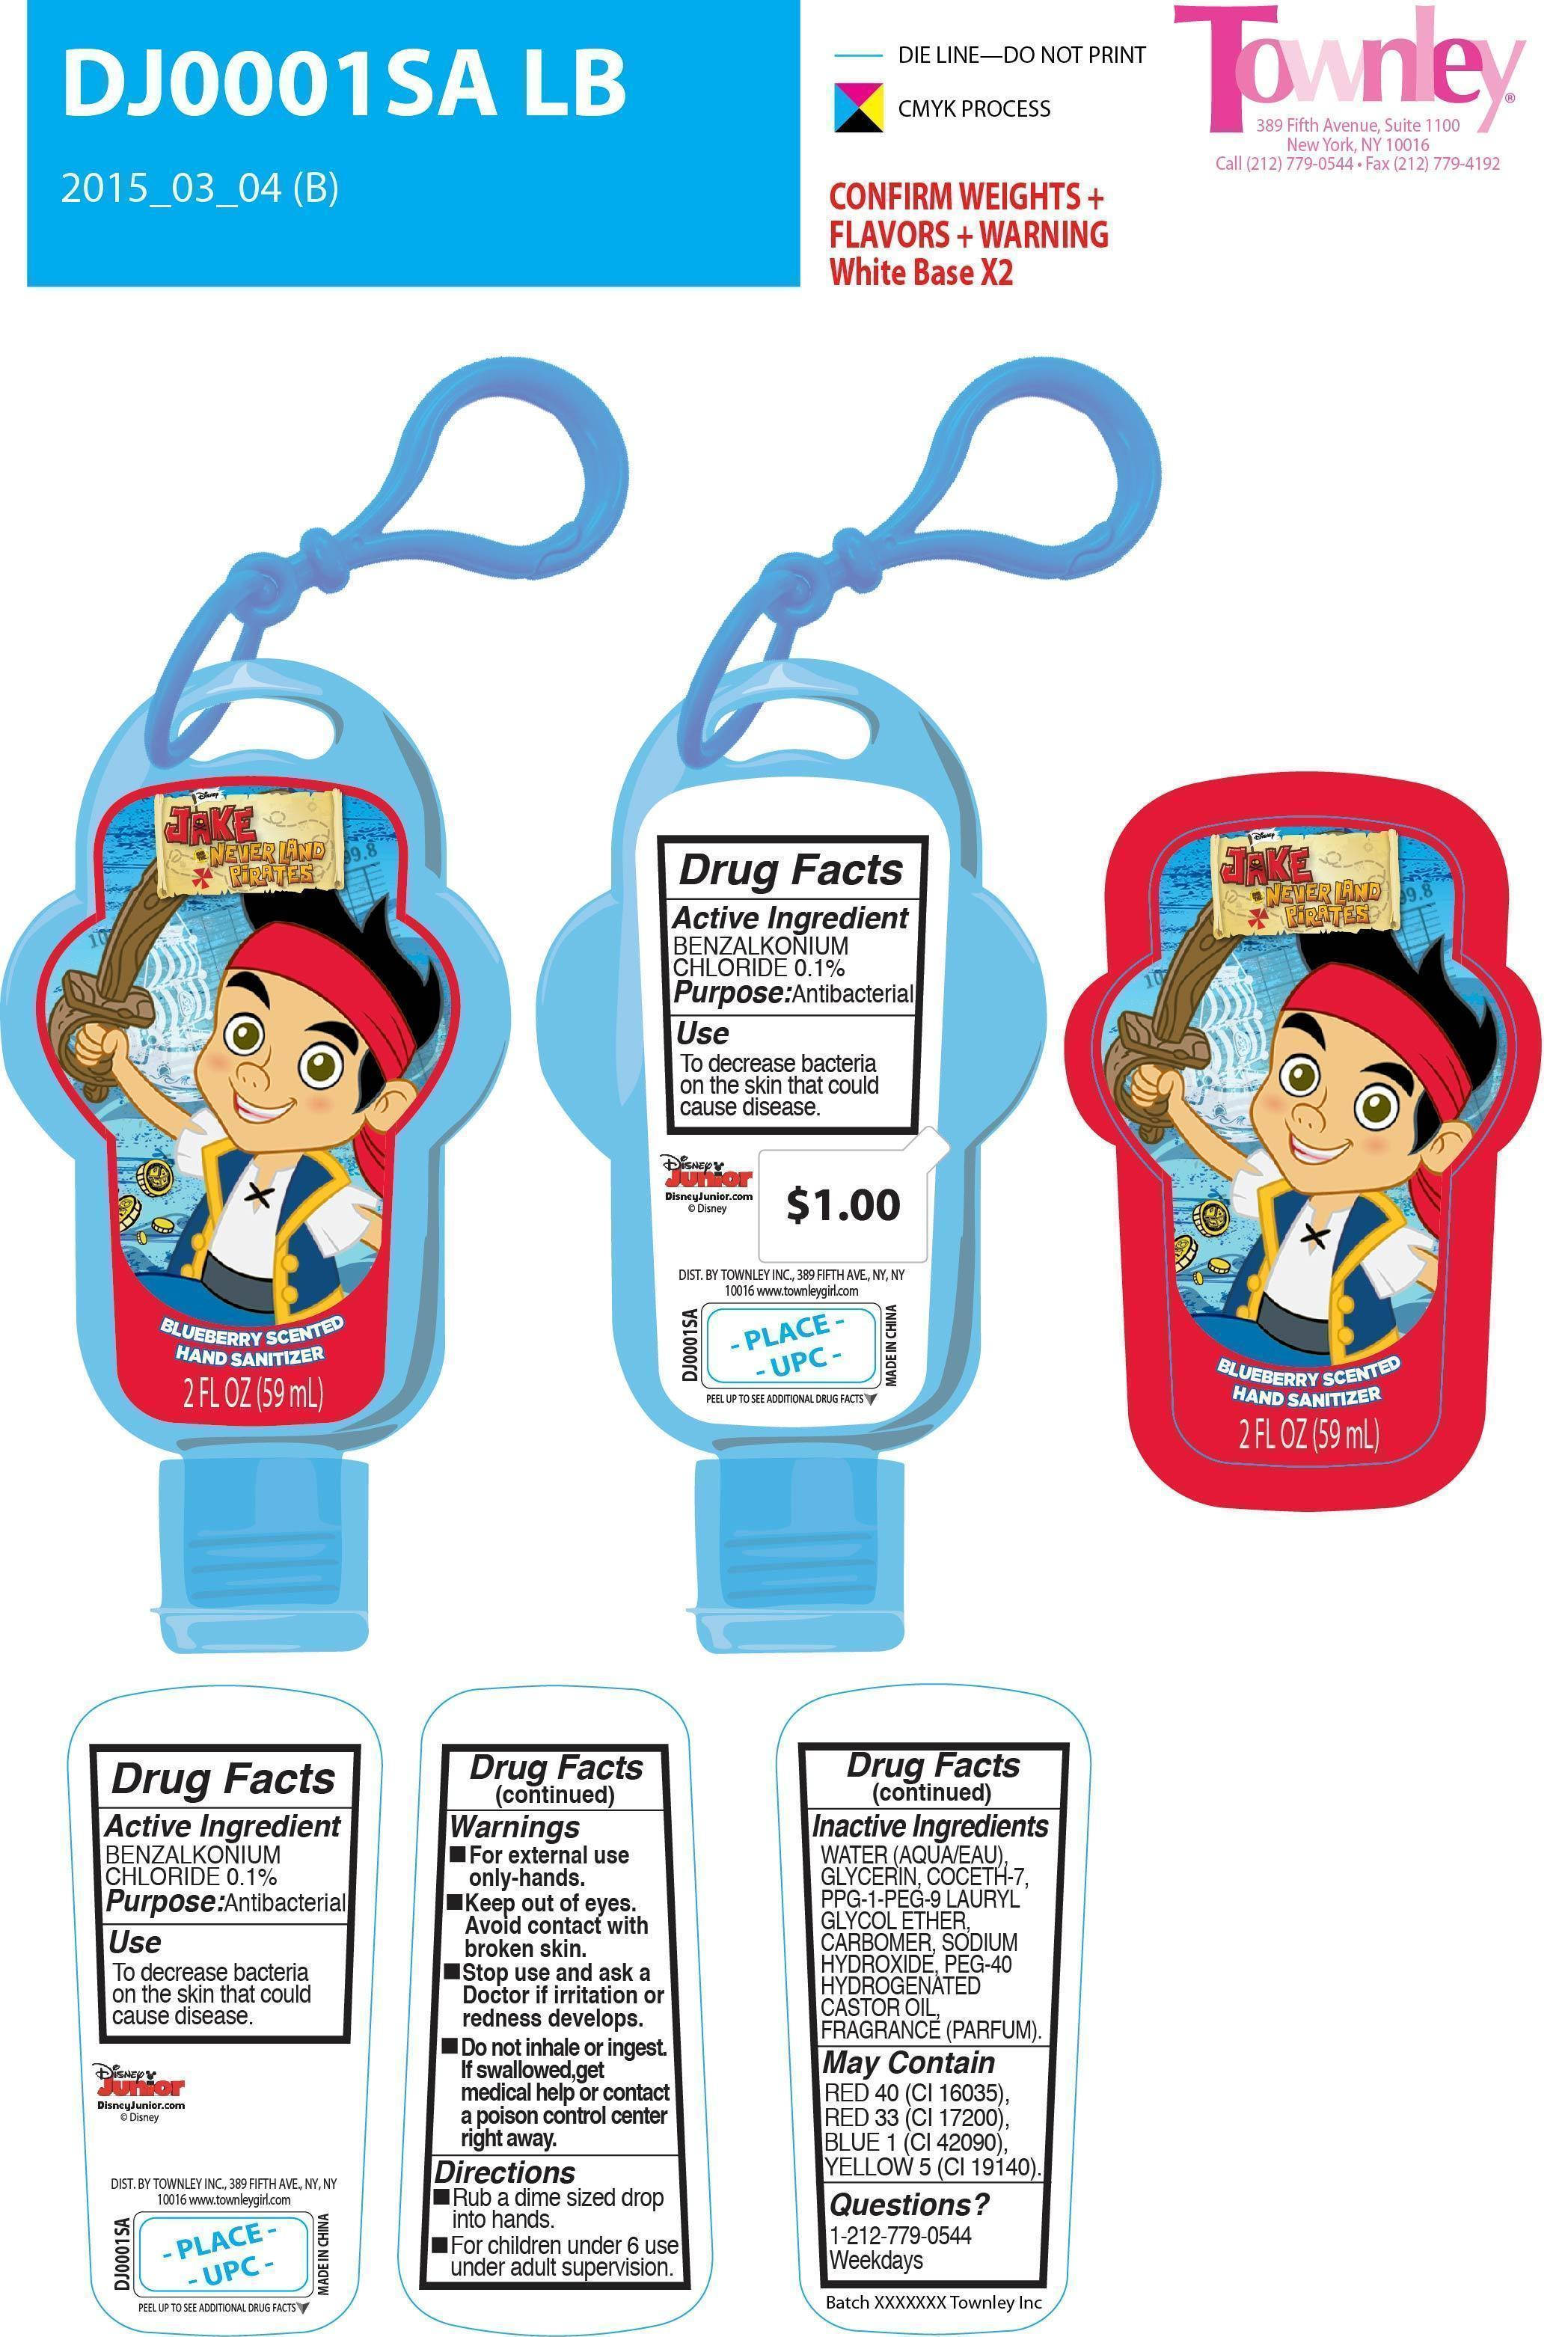 Blueberry Scented Hand Sanitizer Information, Side Effects, Warnings